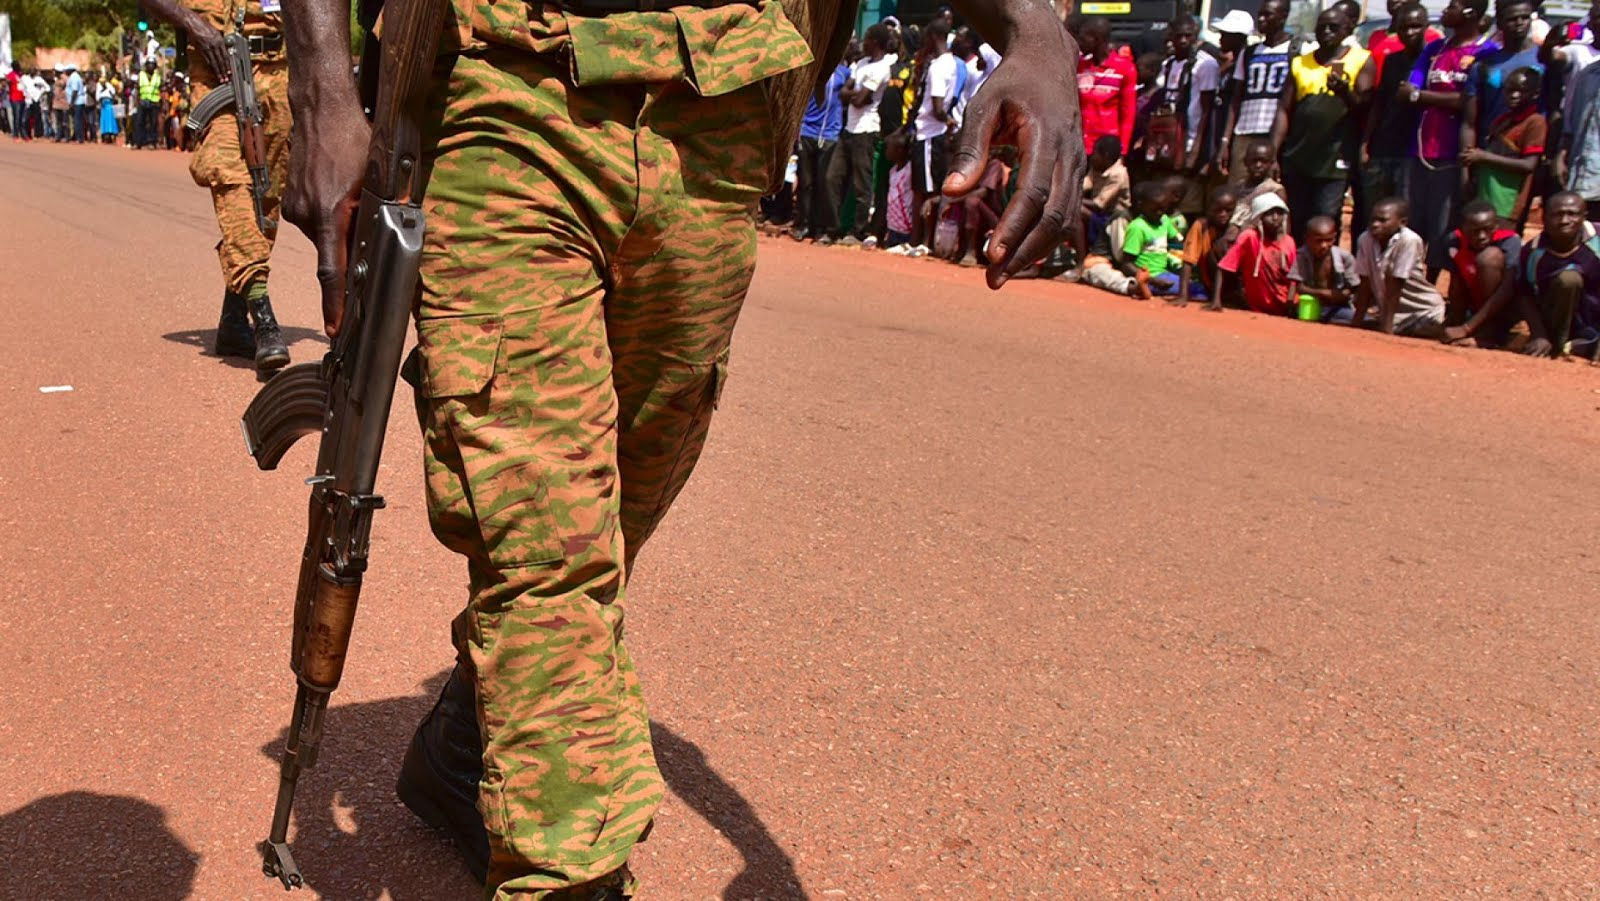 2c3ff34e222 Catholic church attack in Burkina Faso leaves at least 6 dead, including  priest, reports say